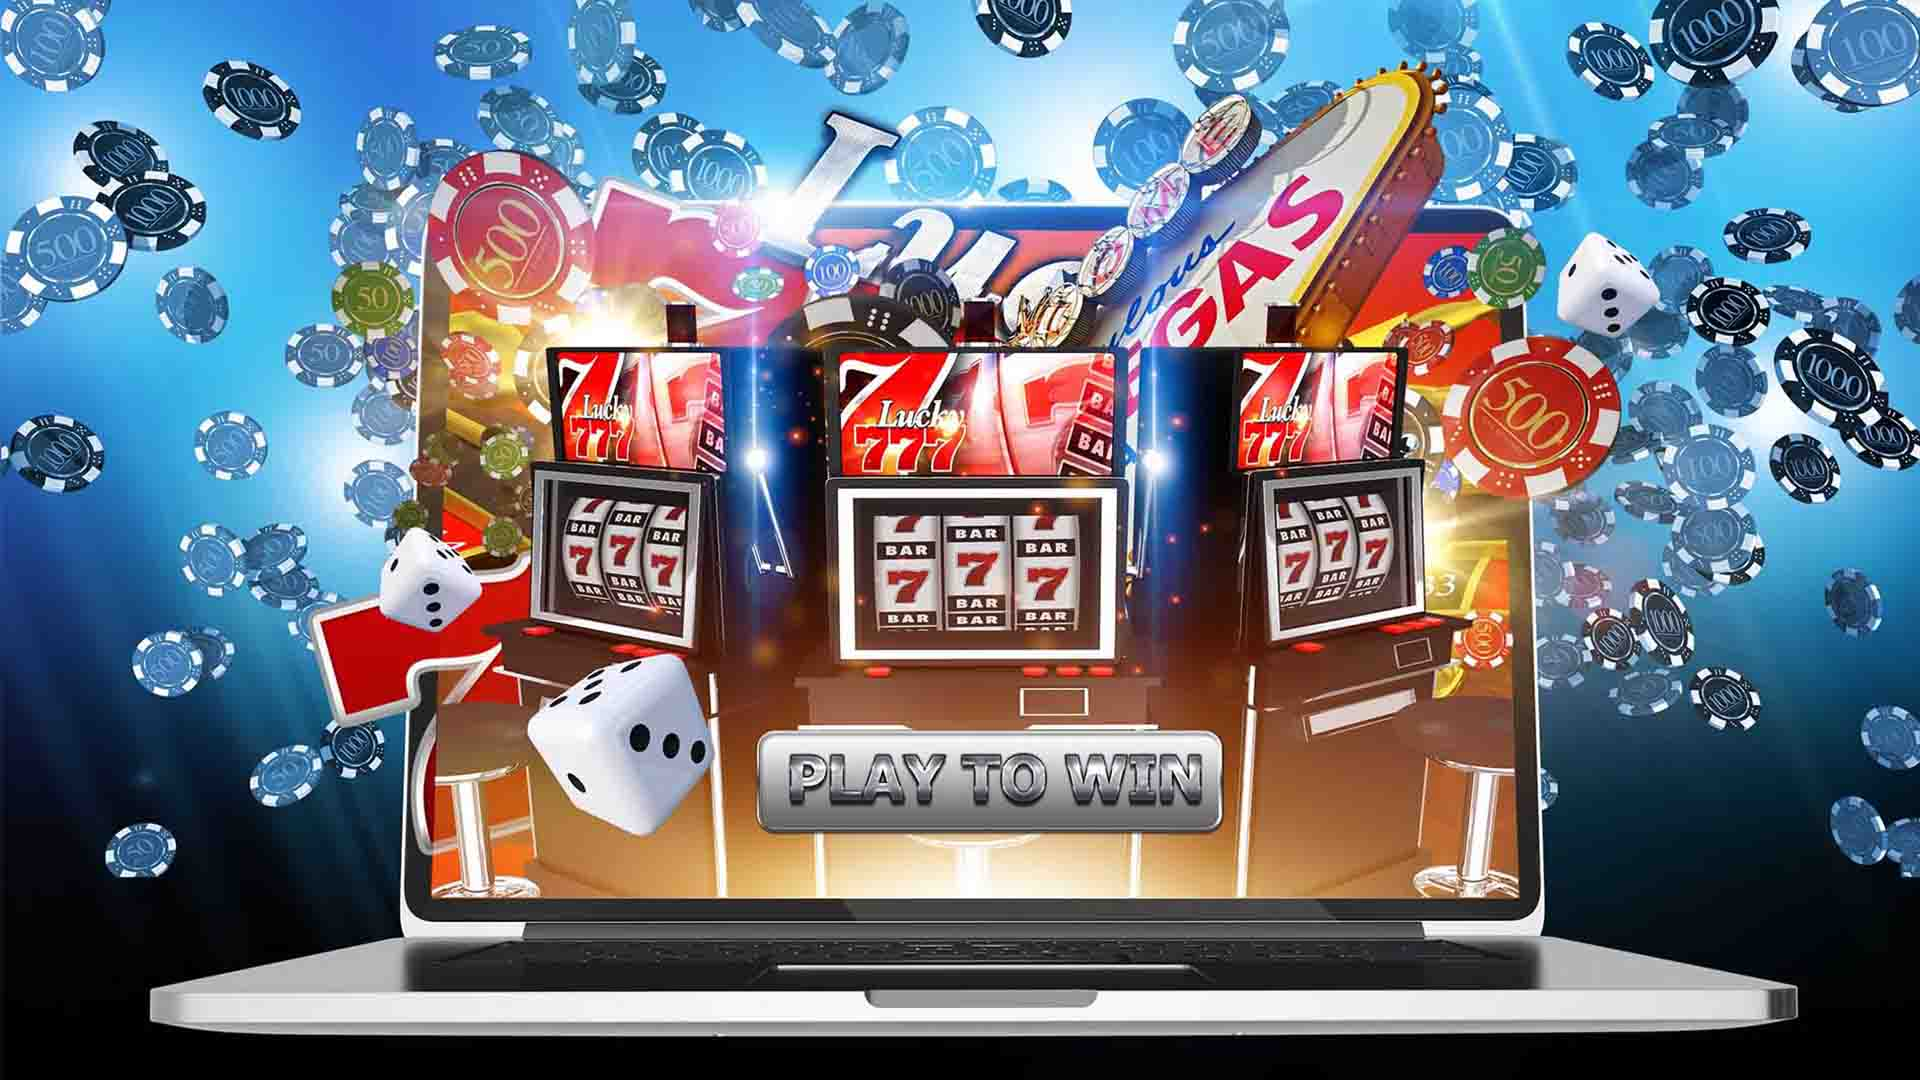 Top 5: These are the most popular casino games on the web